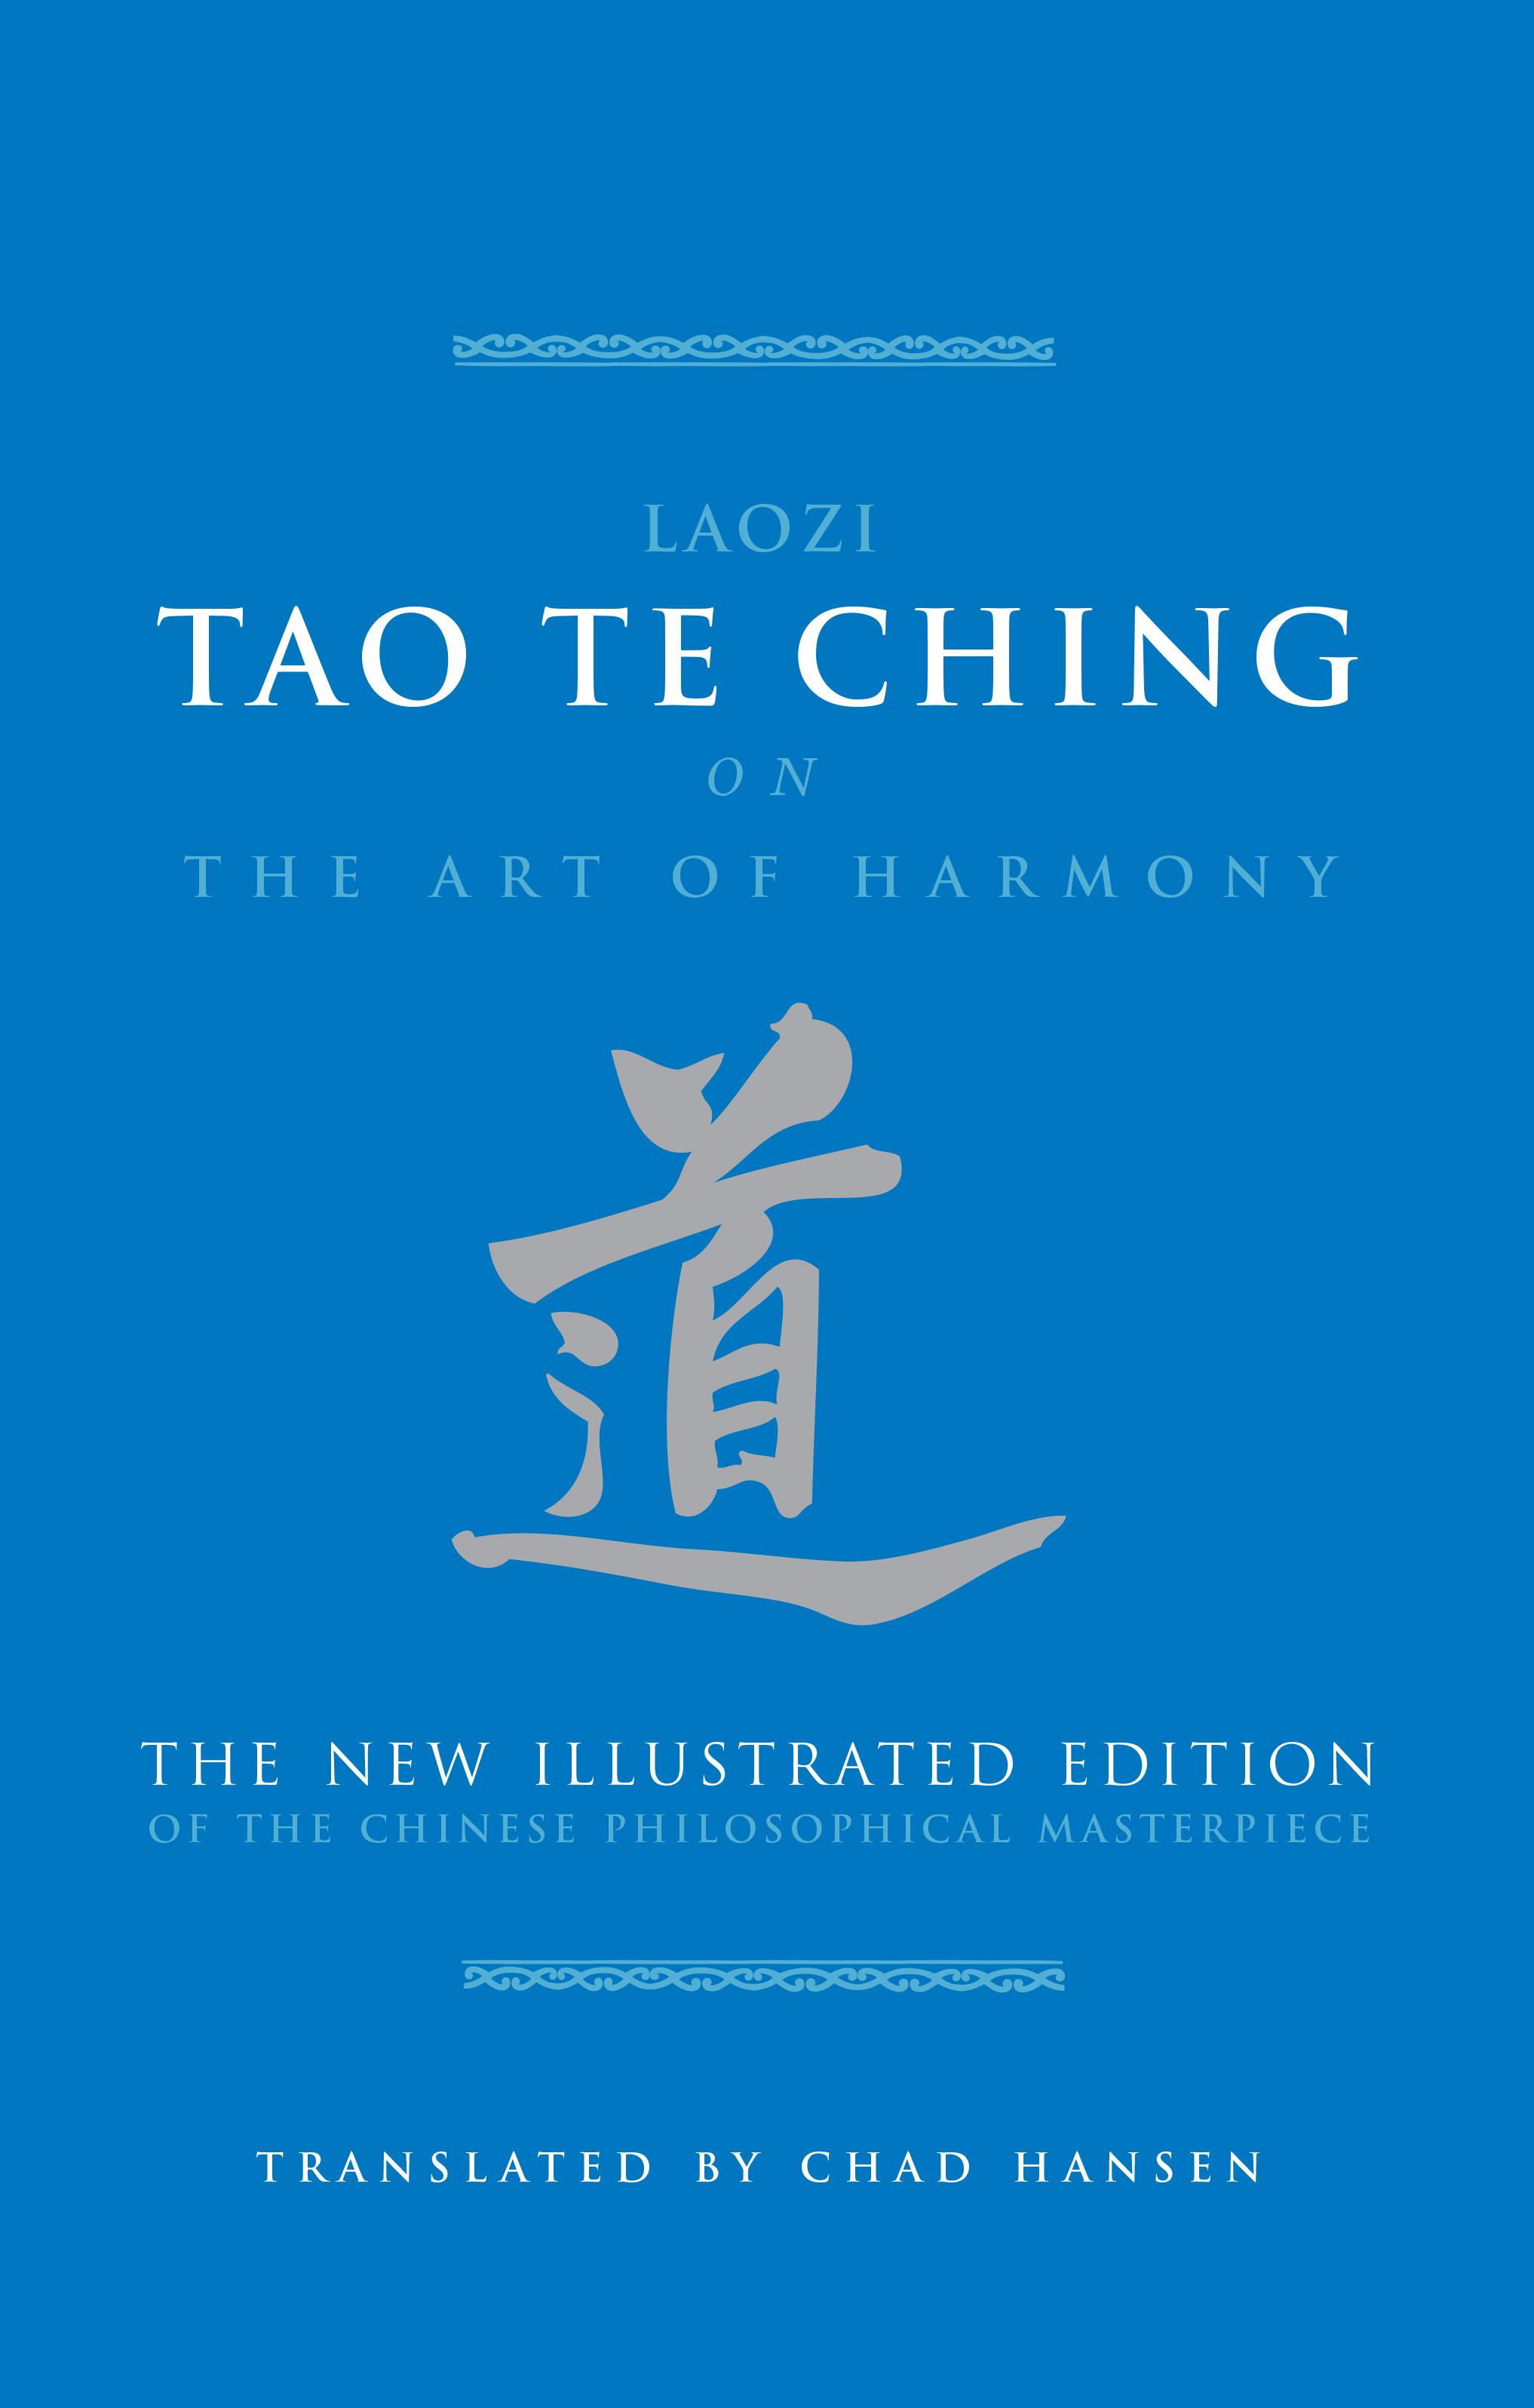 the tao te ching All 81 chapter of the tao te ching - read to music the tao te ching, daodejing, or dao de jing (道德經: 道 dào way 德 dé virtue 經 jīng classic or text) also simply referred to as the laozi, is a chinese classic text.